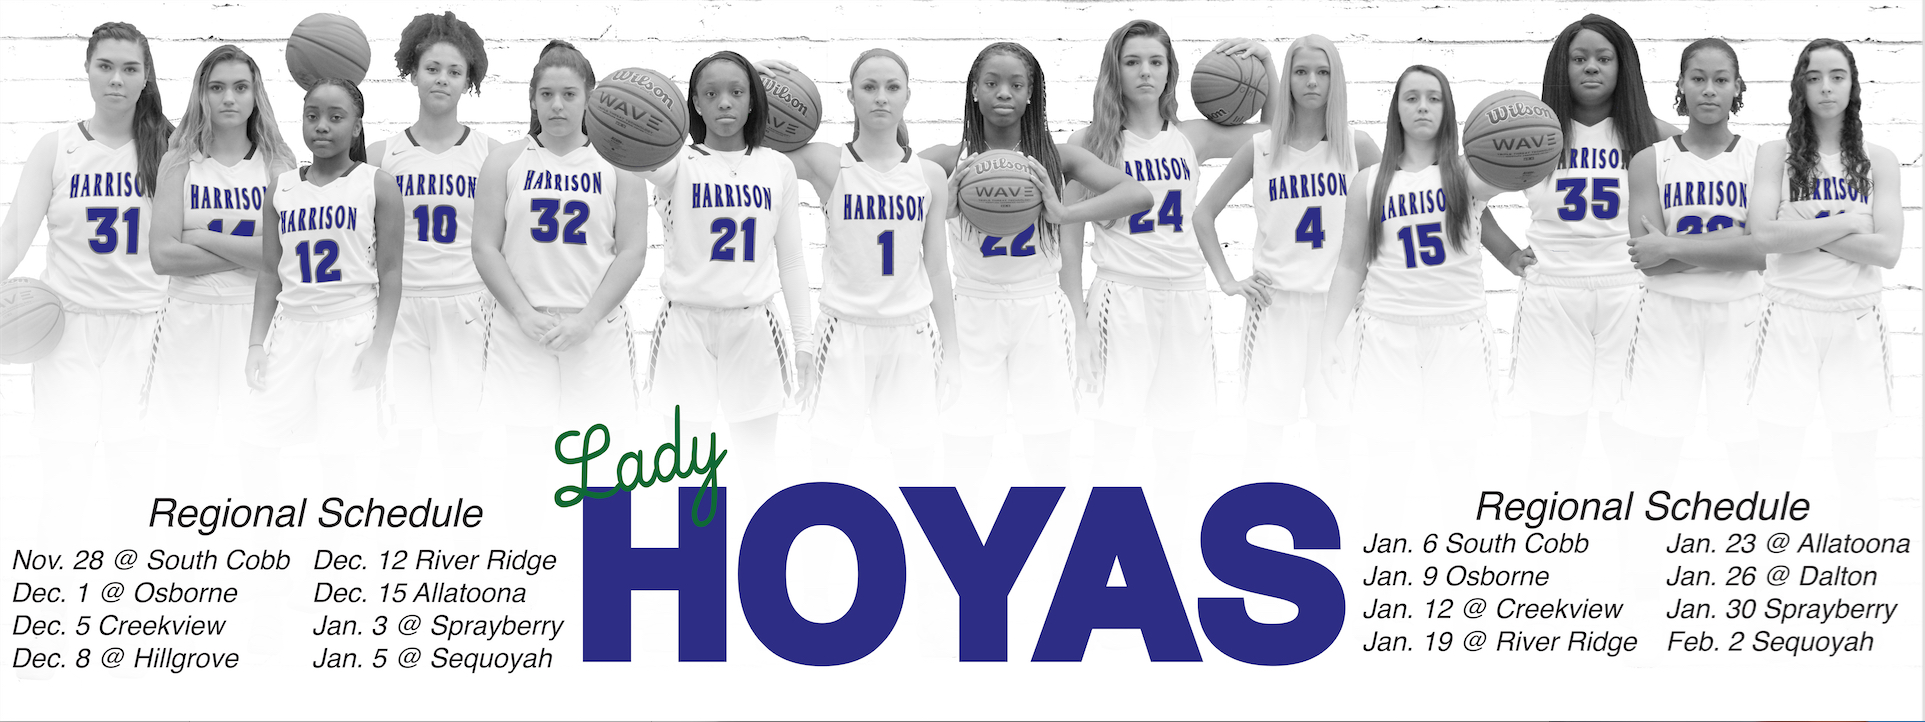 Lady Hoyas Advance to the Final Four Again!